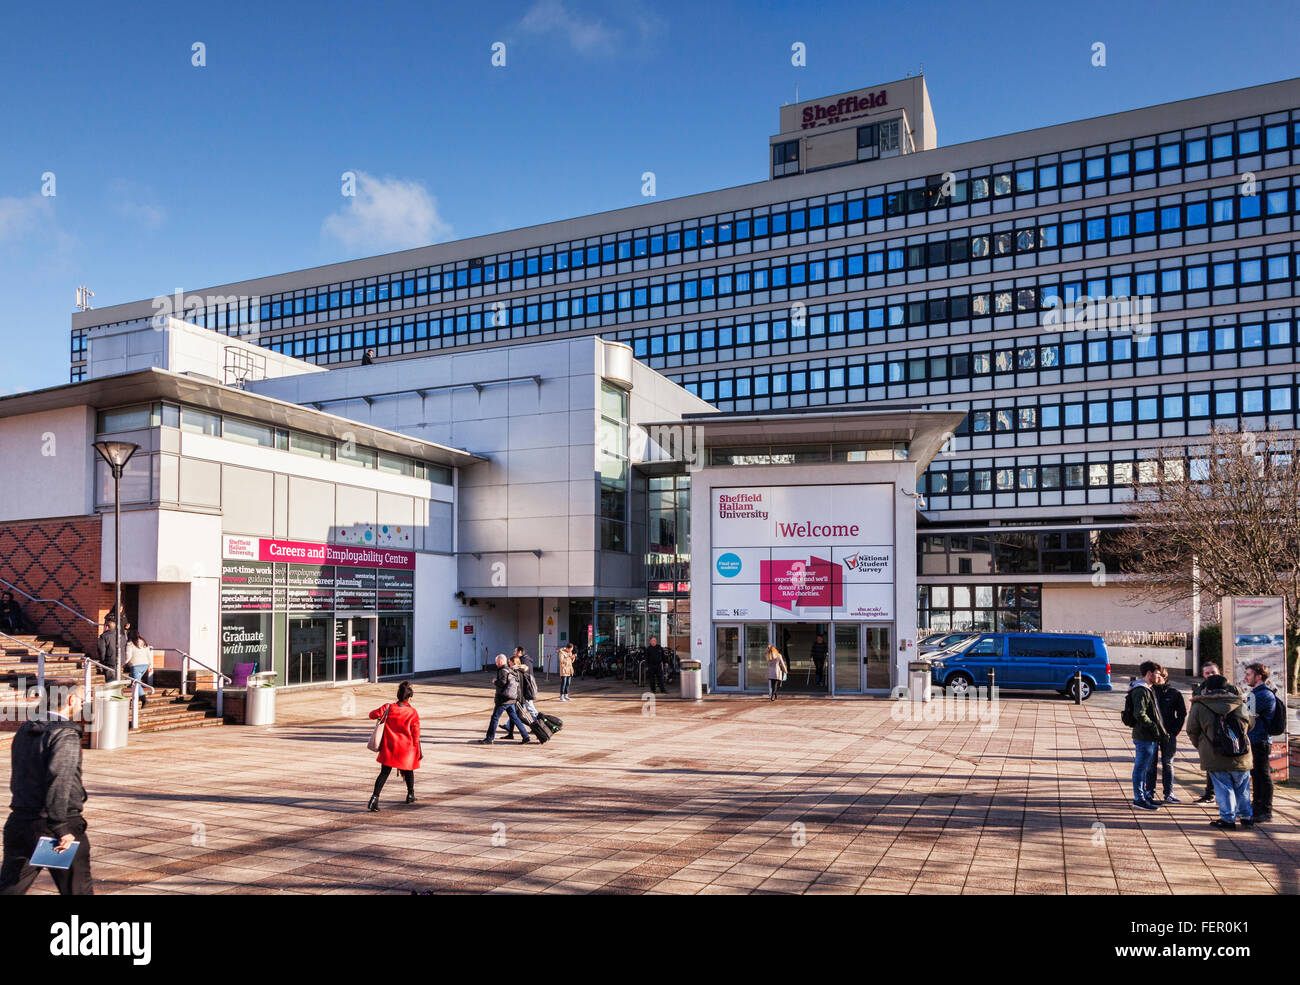 Sheffield Hallam University, Sheffield, South Yorkshire, England, UK, and the Careers and Employment Centre, on - Stock Image